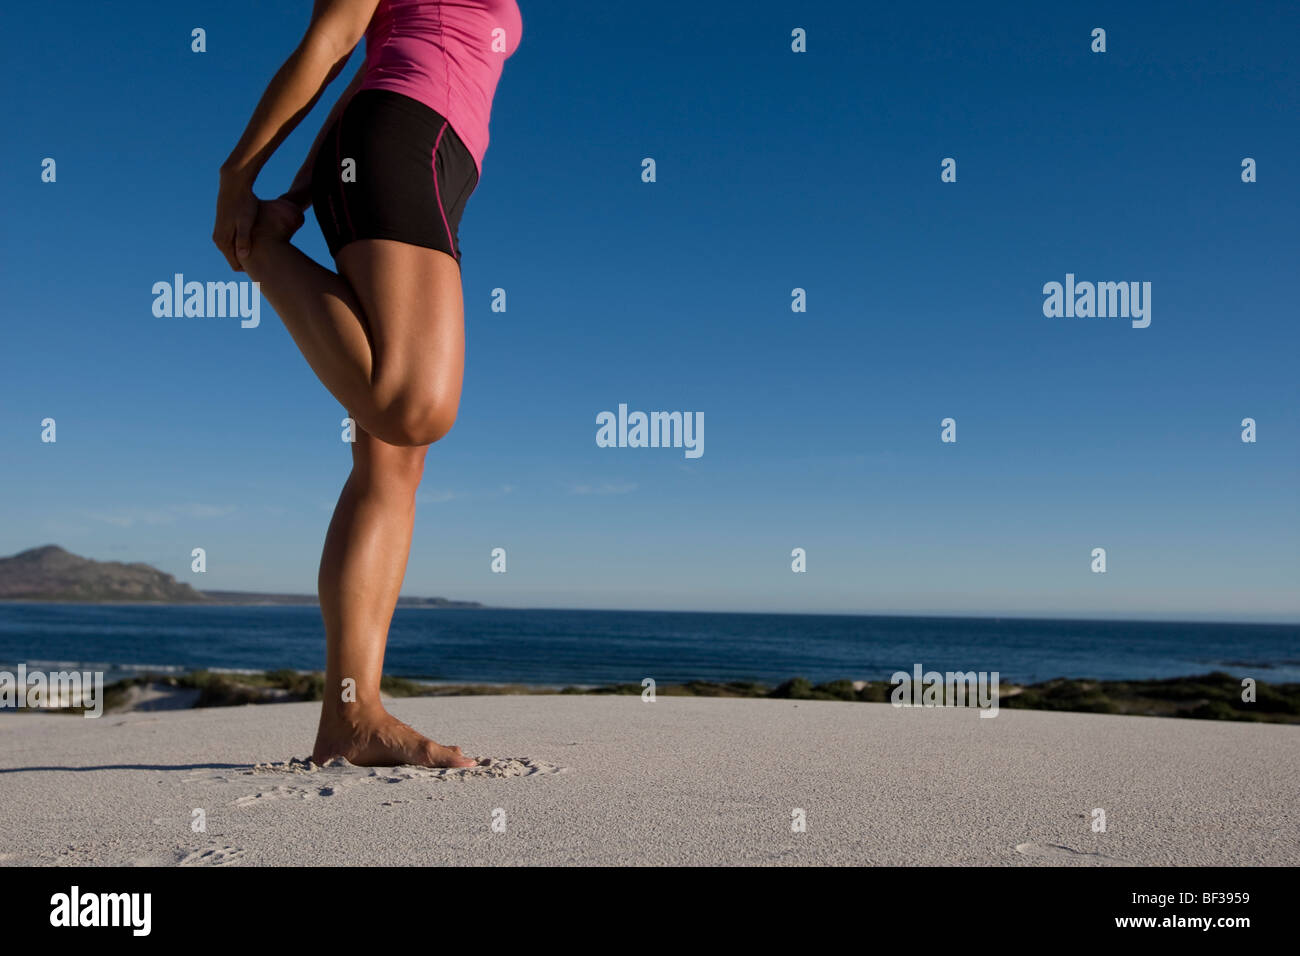 Young Woman barefoot stretches leg - Stock Image